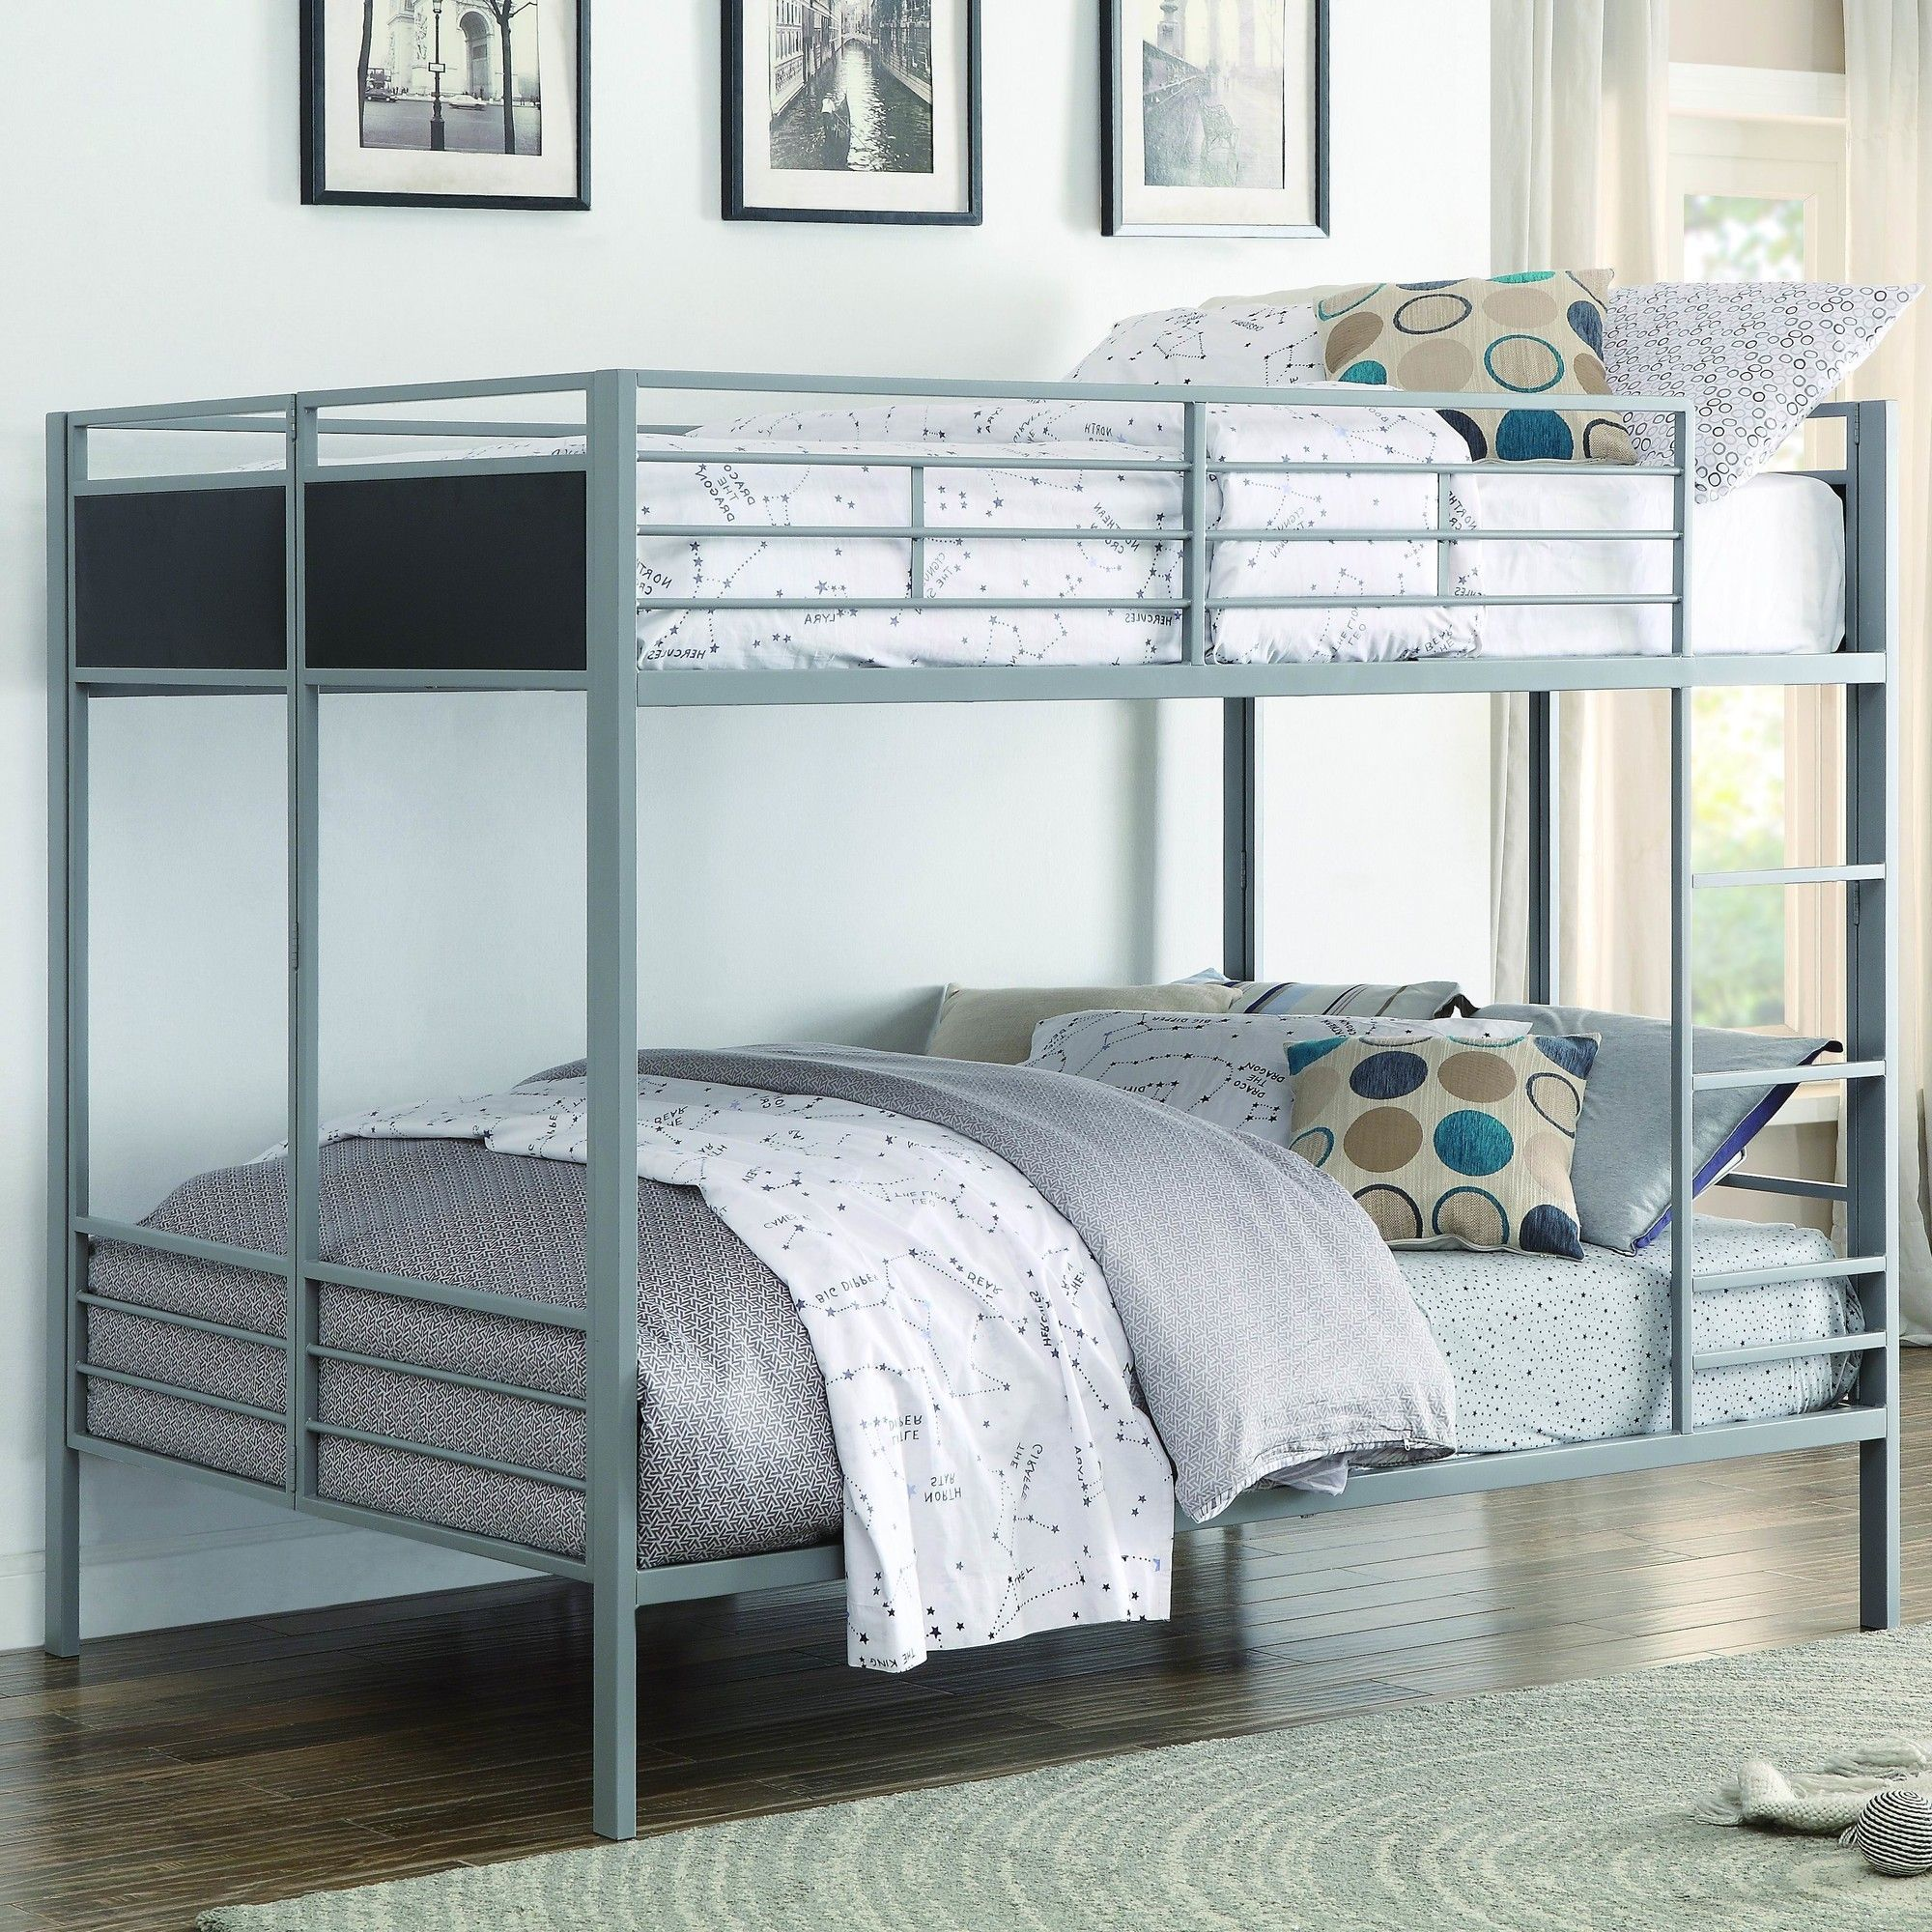 Dex Bunk Bed Metal Bunk Beds Bunk Beds Bunk Beds Small Room